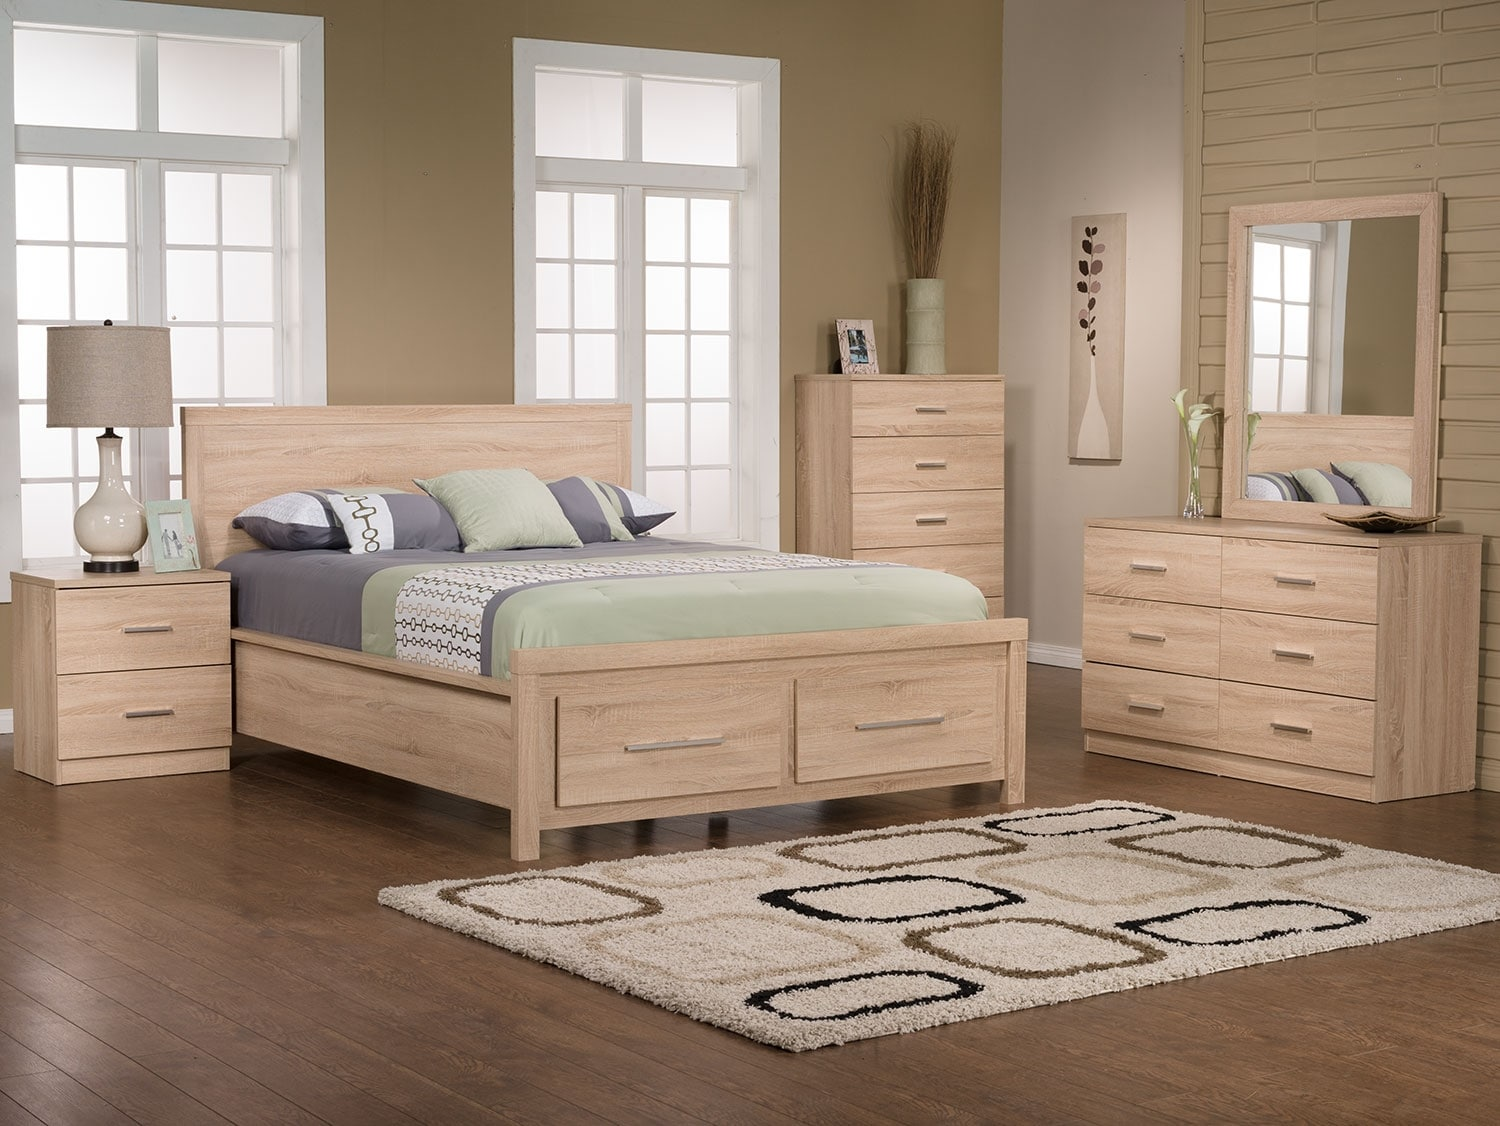 Bedroom Furniture - Sierra Queen 5pc Bedroom